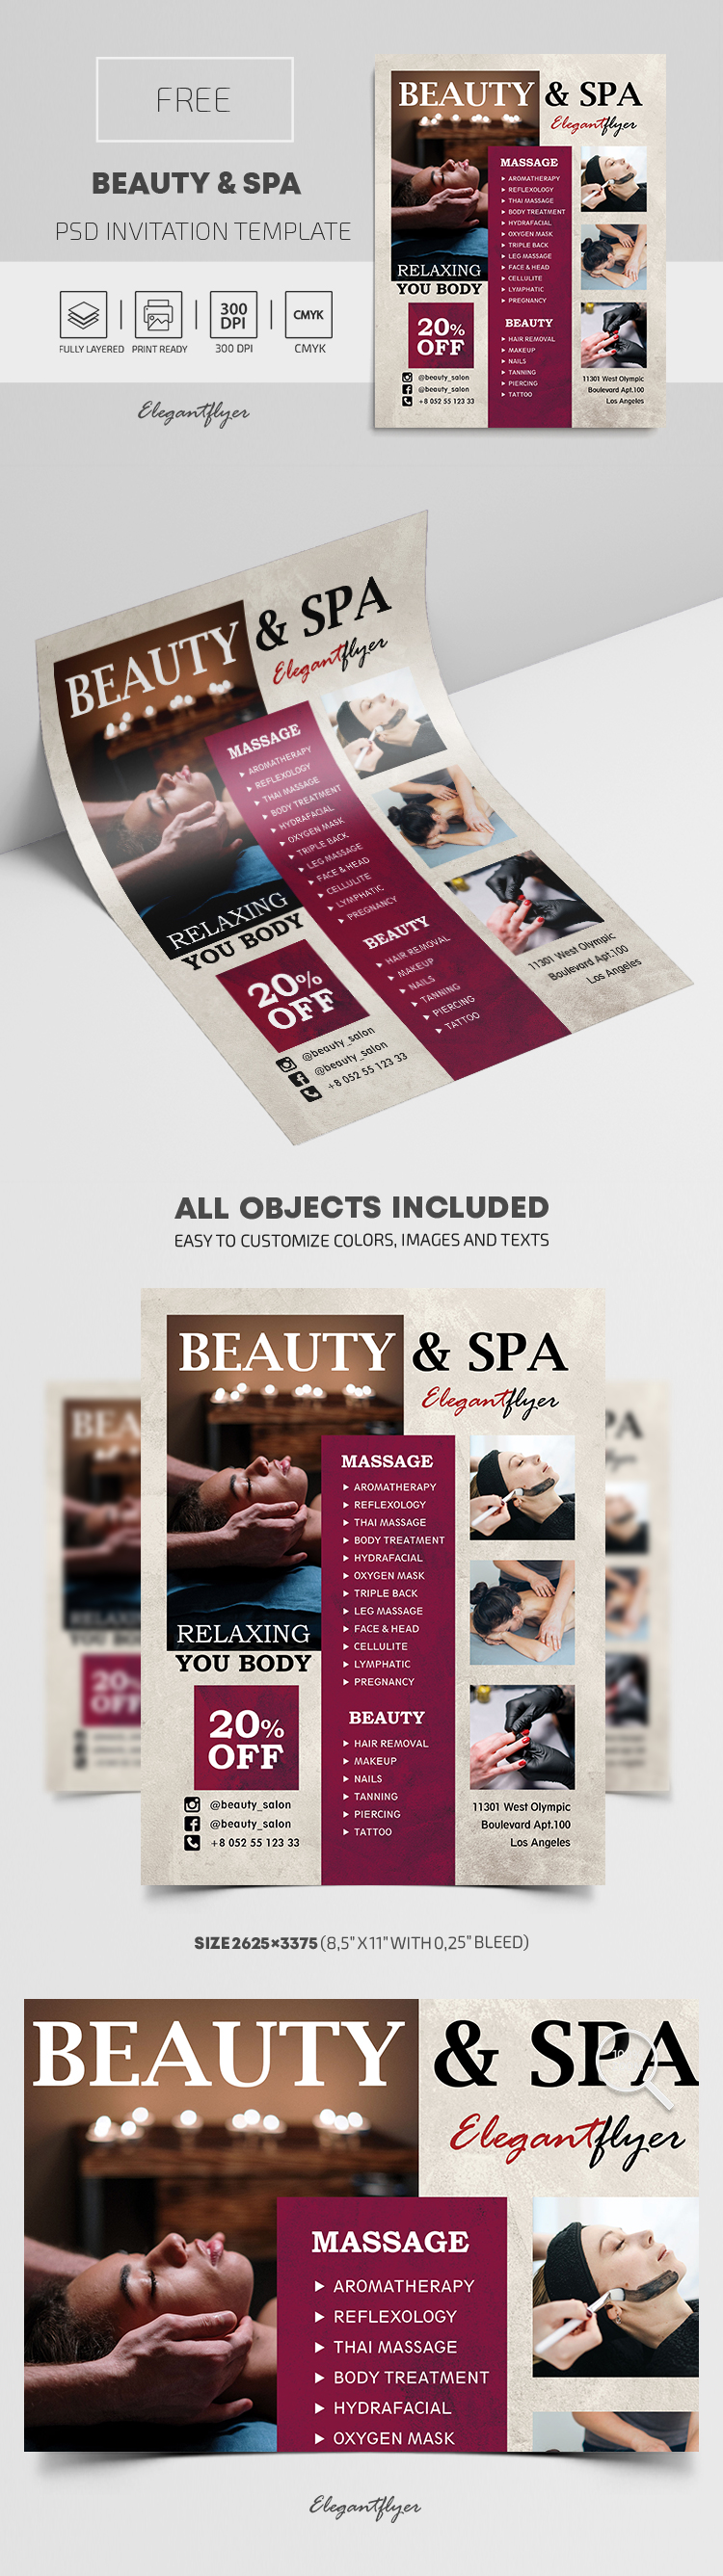 Beauty and Spa – Free PSD Invitation Template